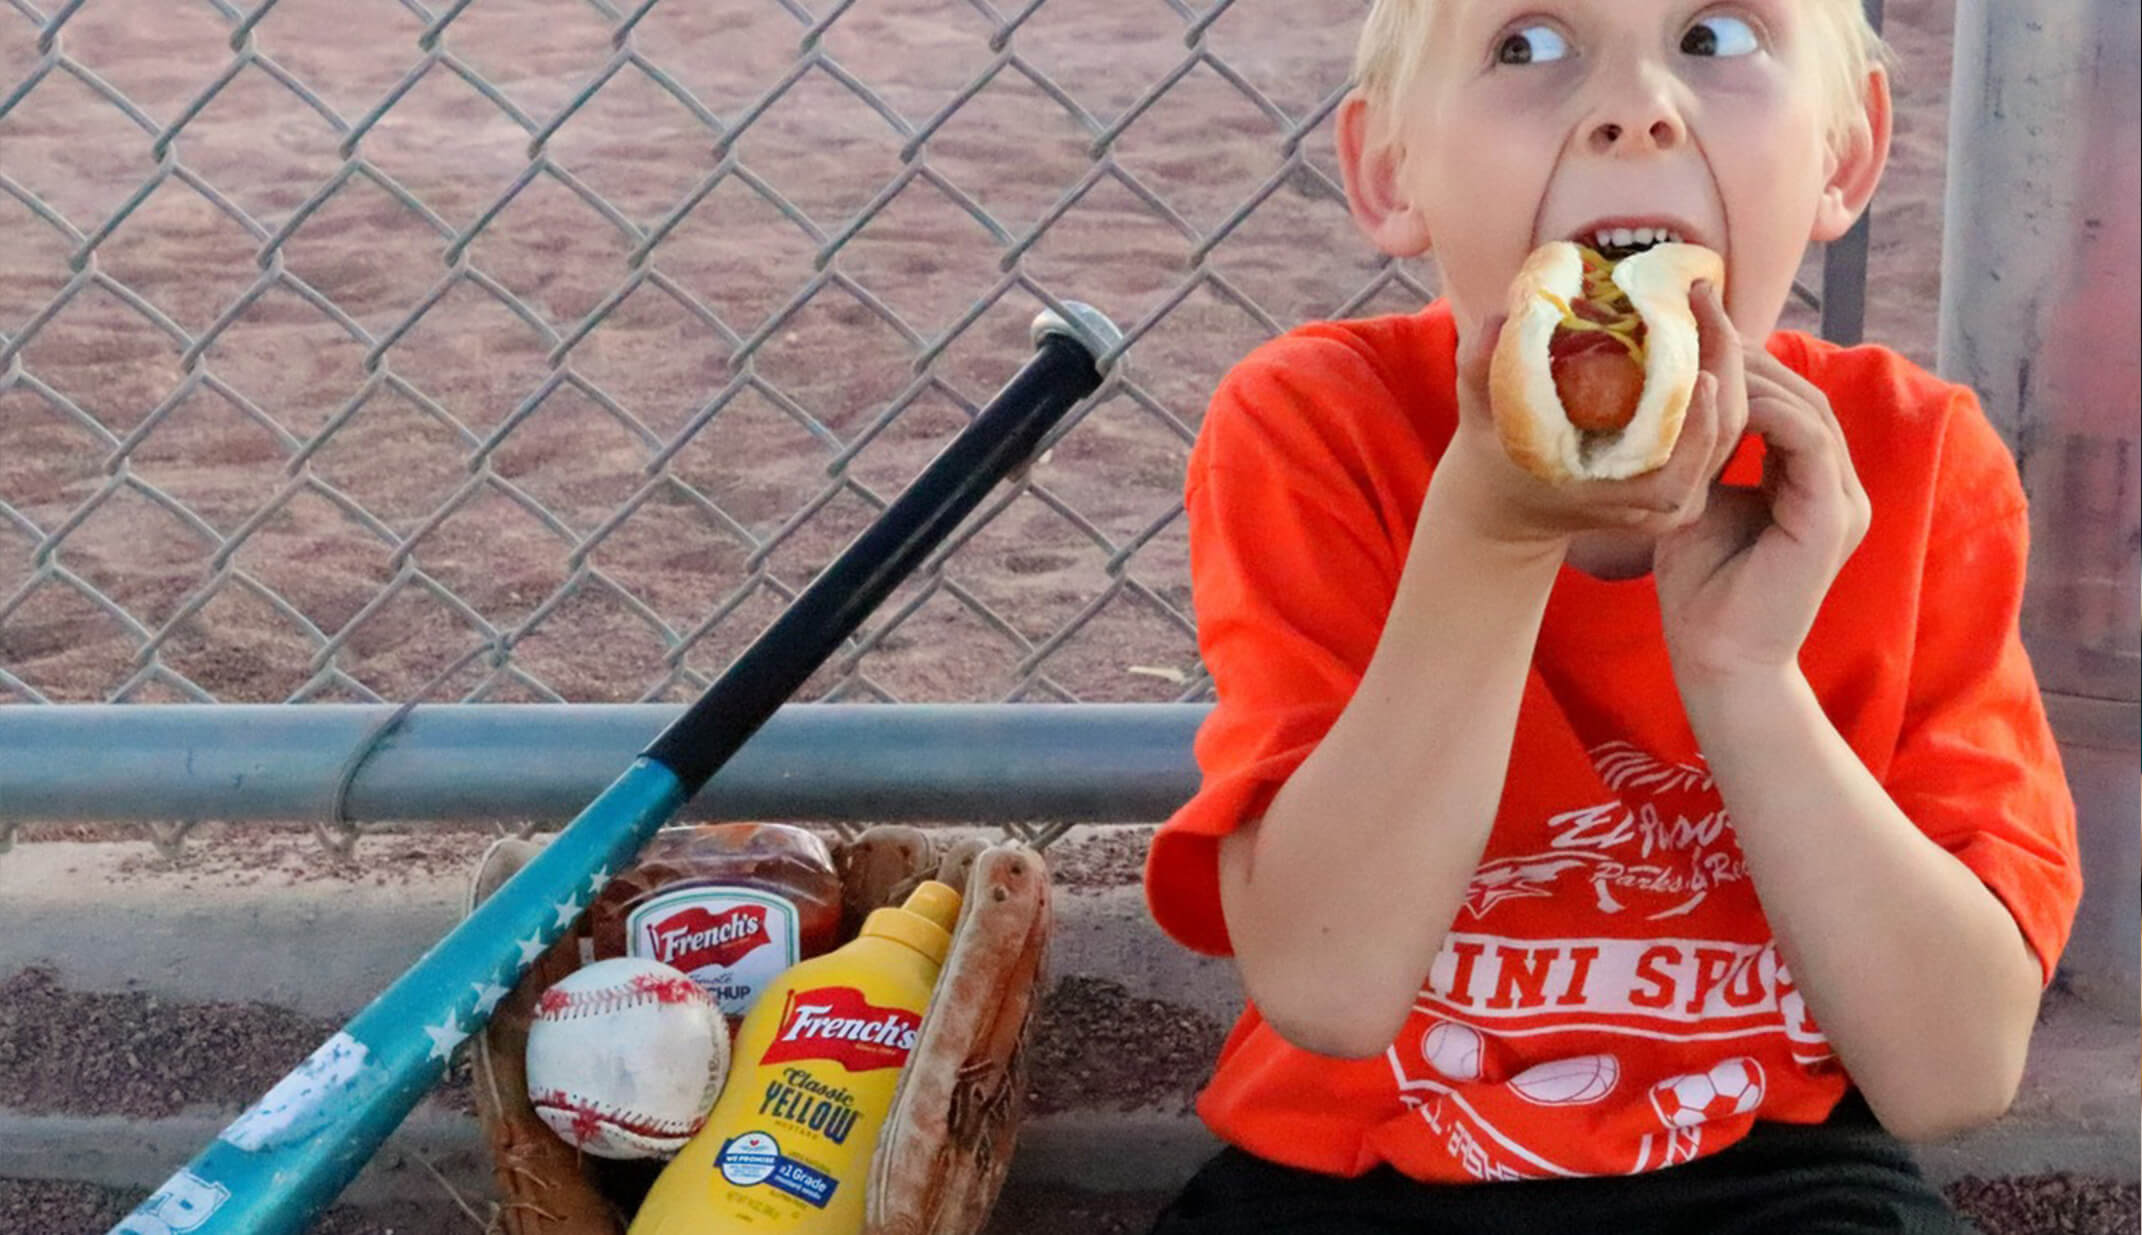 funny kid eating hot-dog baseball bat funny pic UGC content